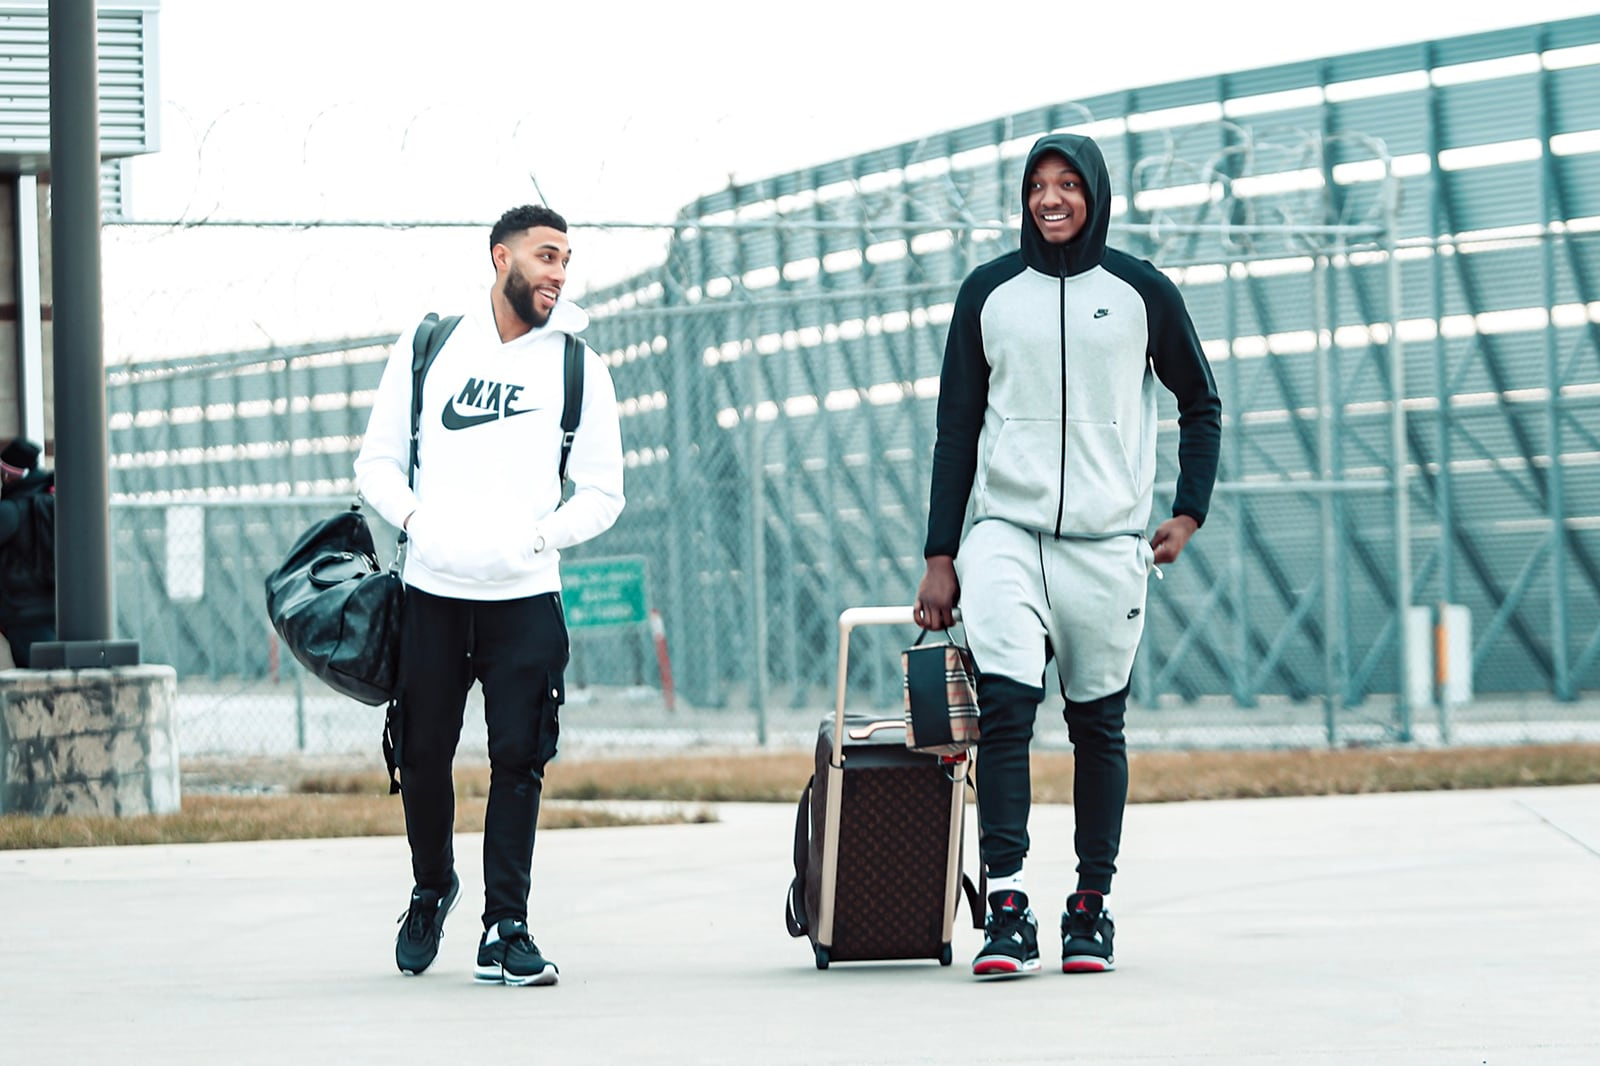 Denzel and Wendell boarding the plane for a team trip